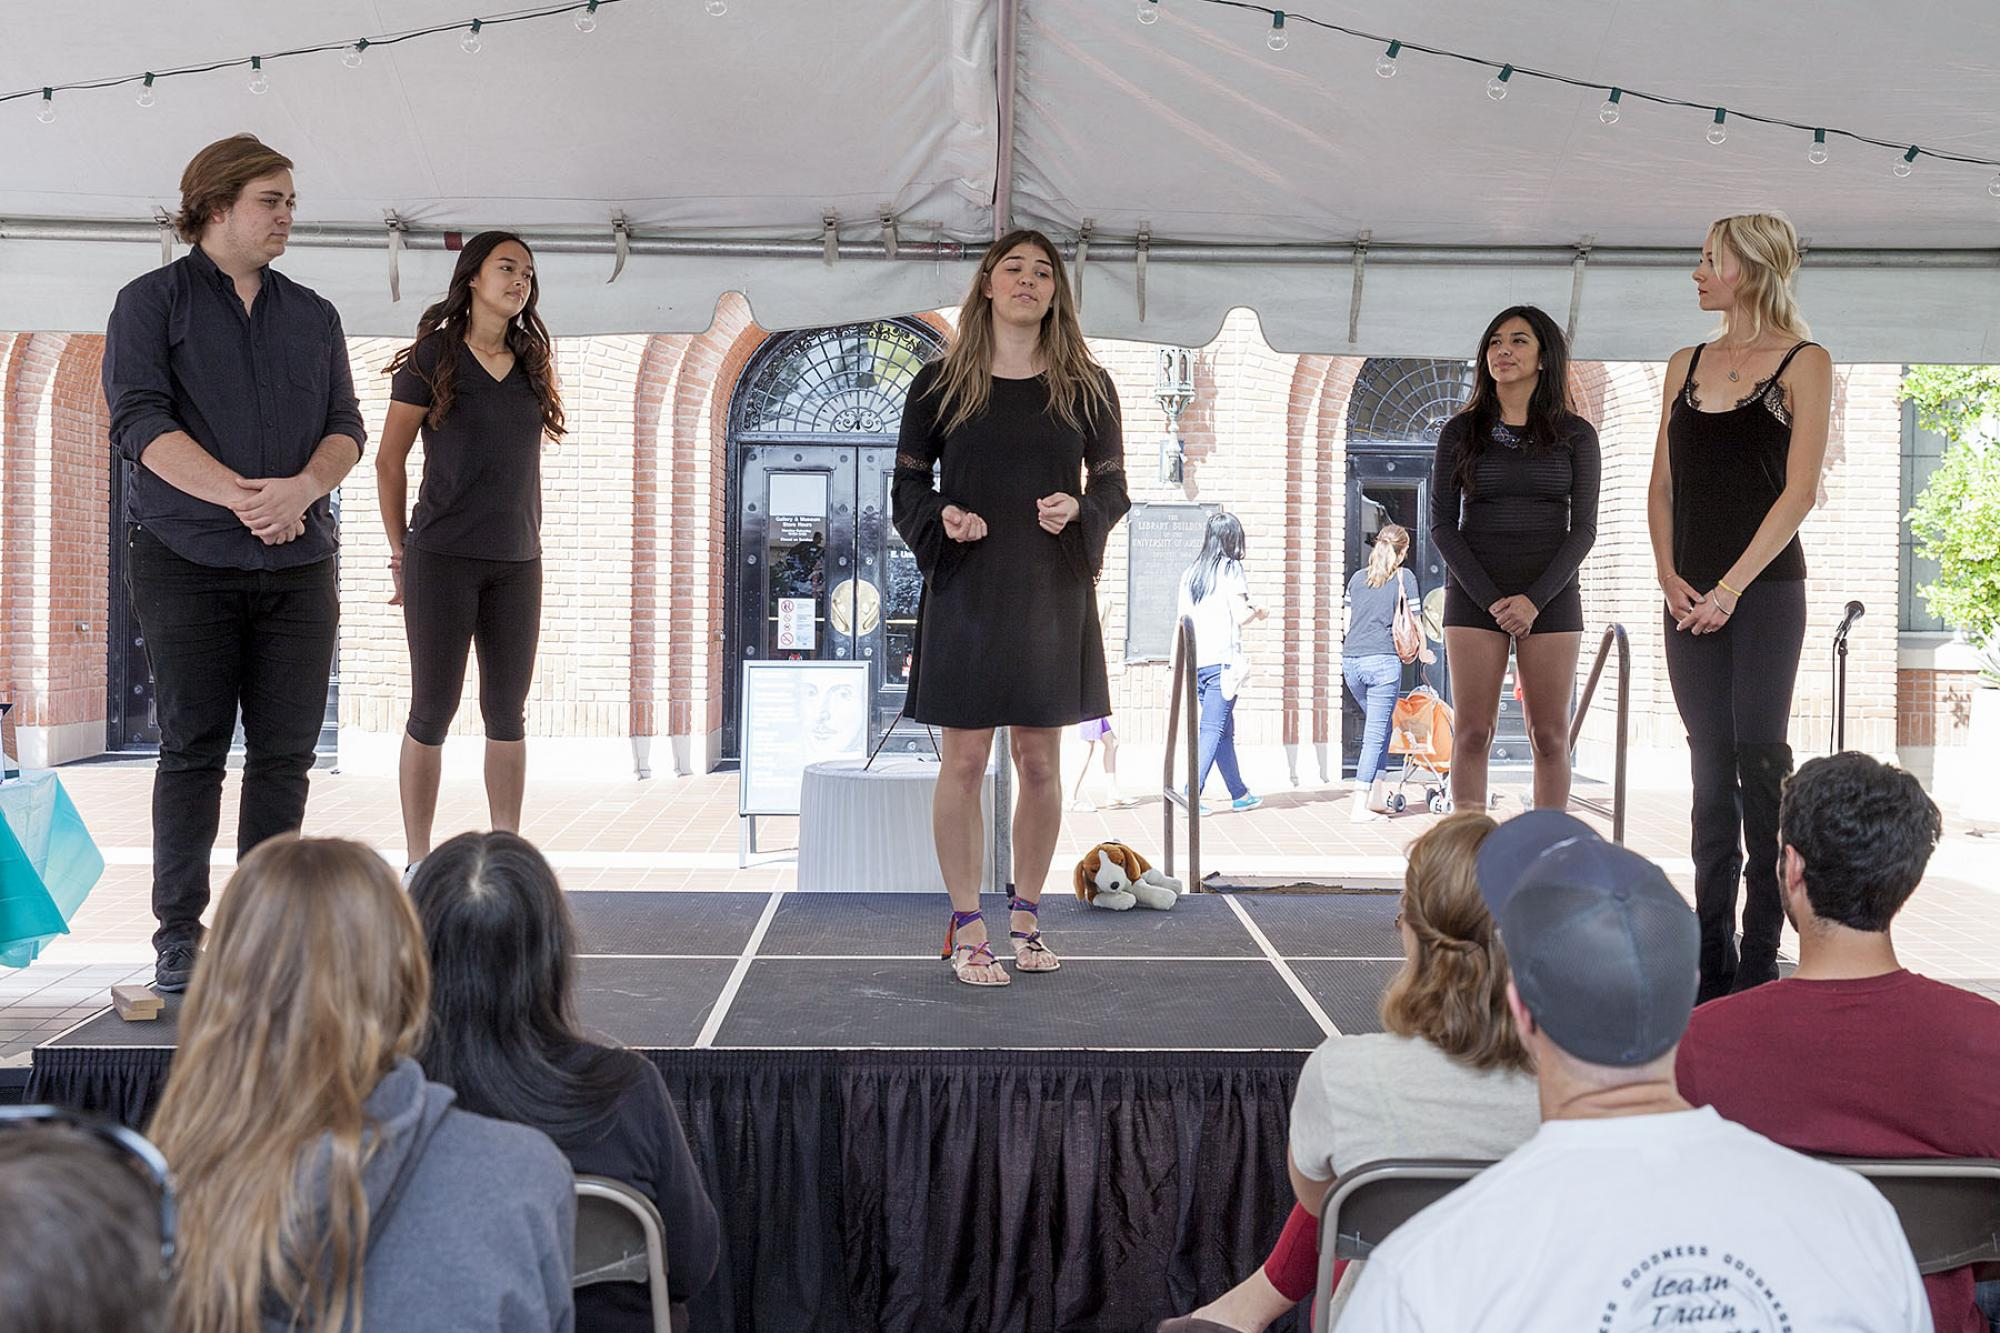 """Members of the Arizona Repertory Theatre perform famous passages from Shakespeare's work. The theatre will perform """"The Tempest"""" and """"The Comedy of Errors"""" as part of First Folio events through March."""